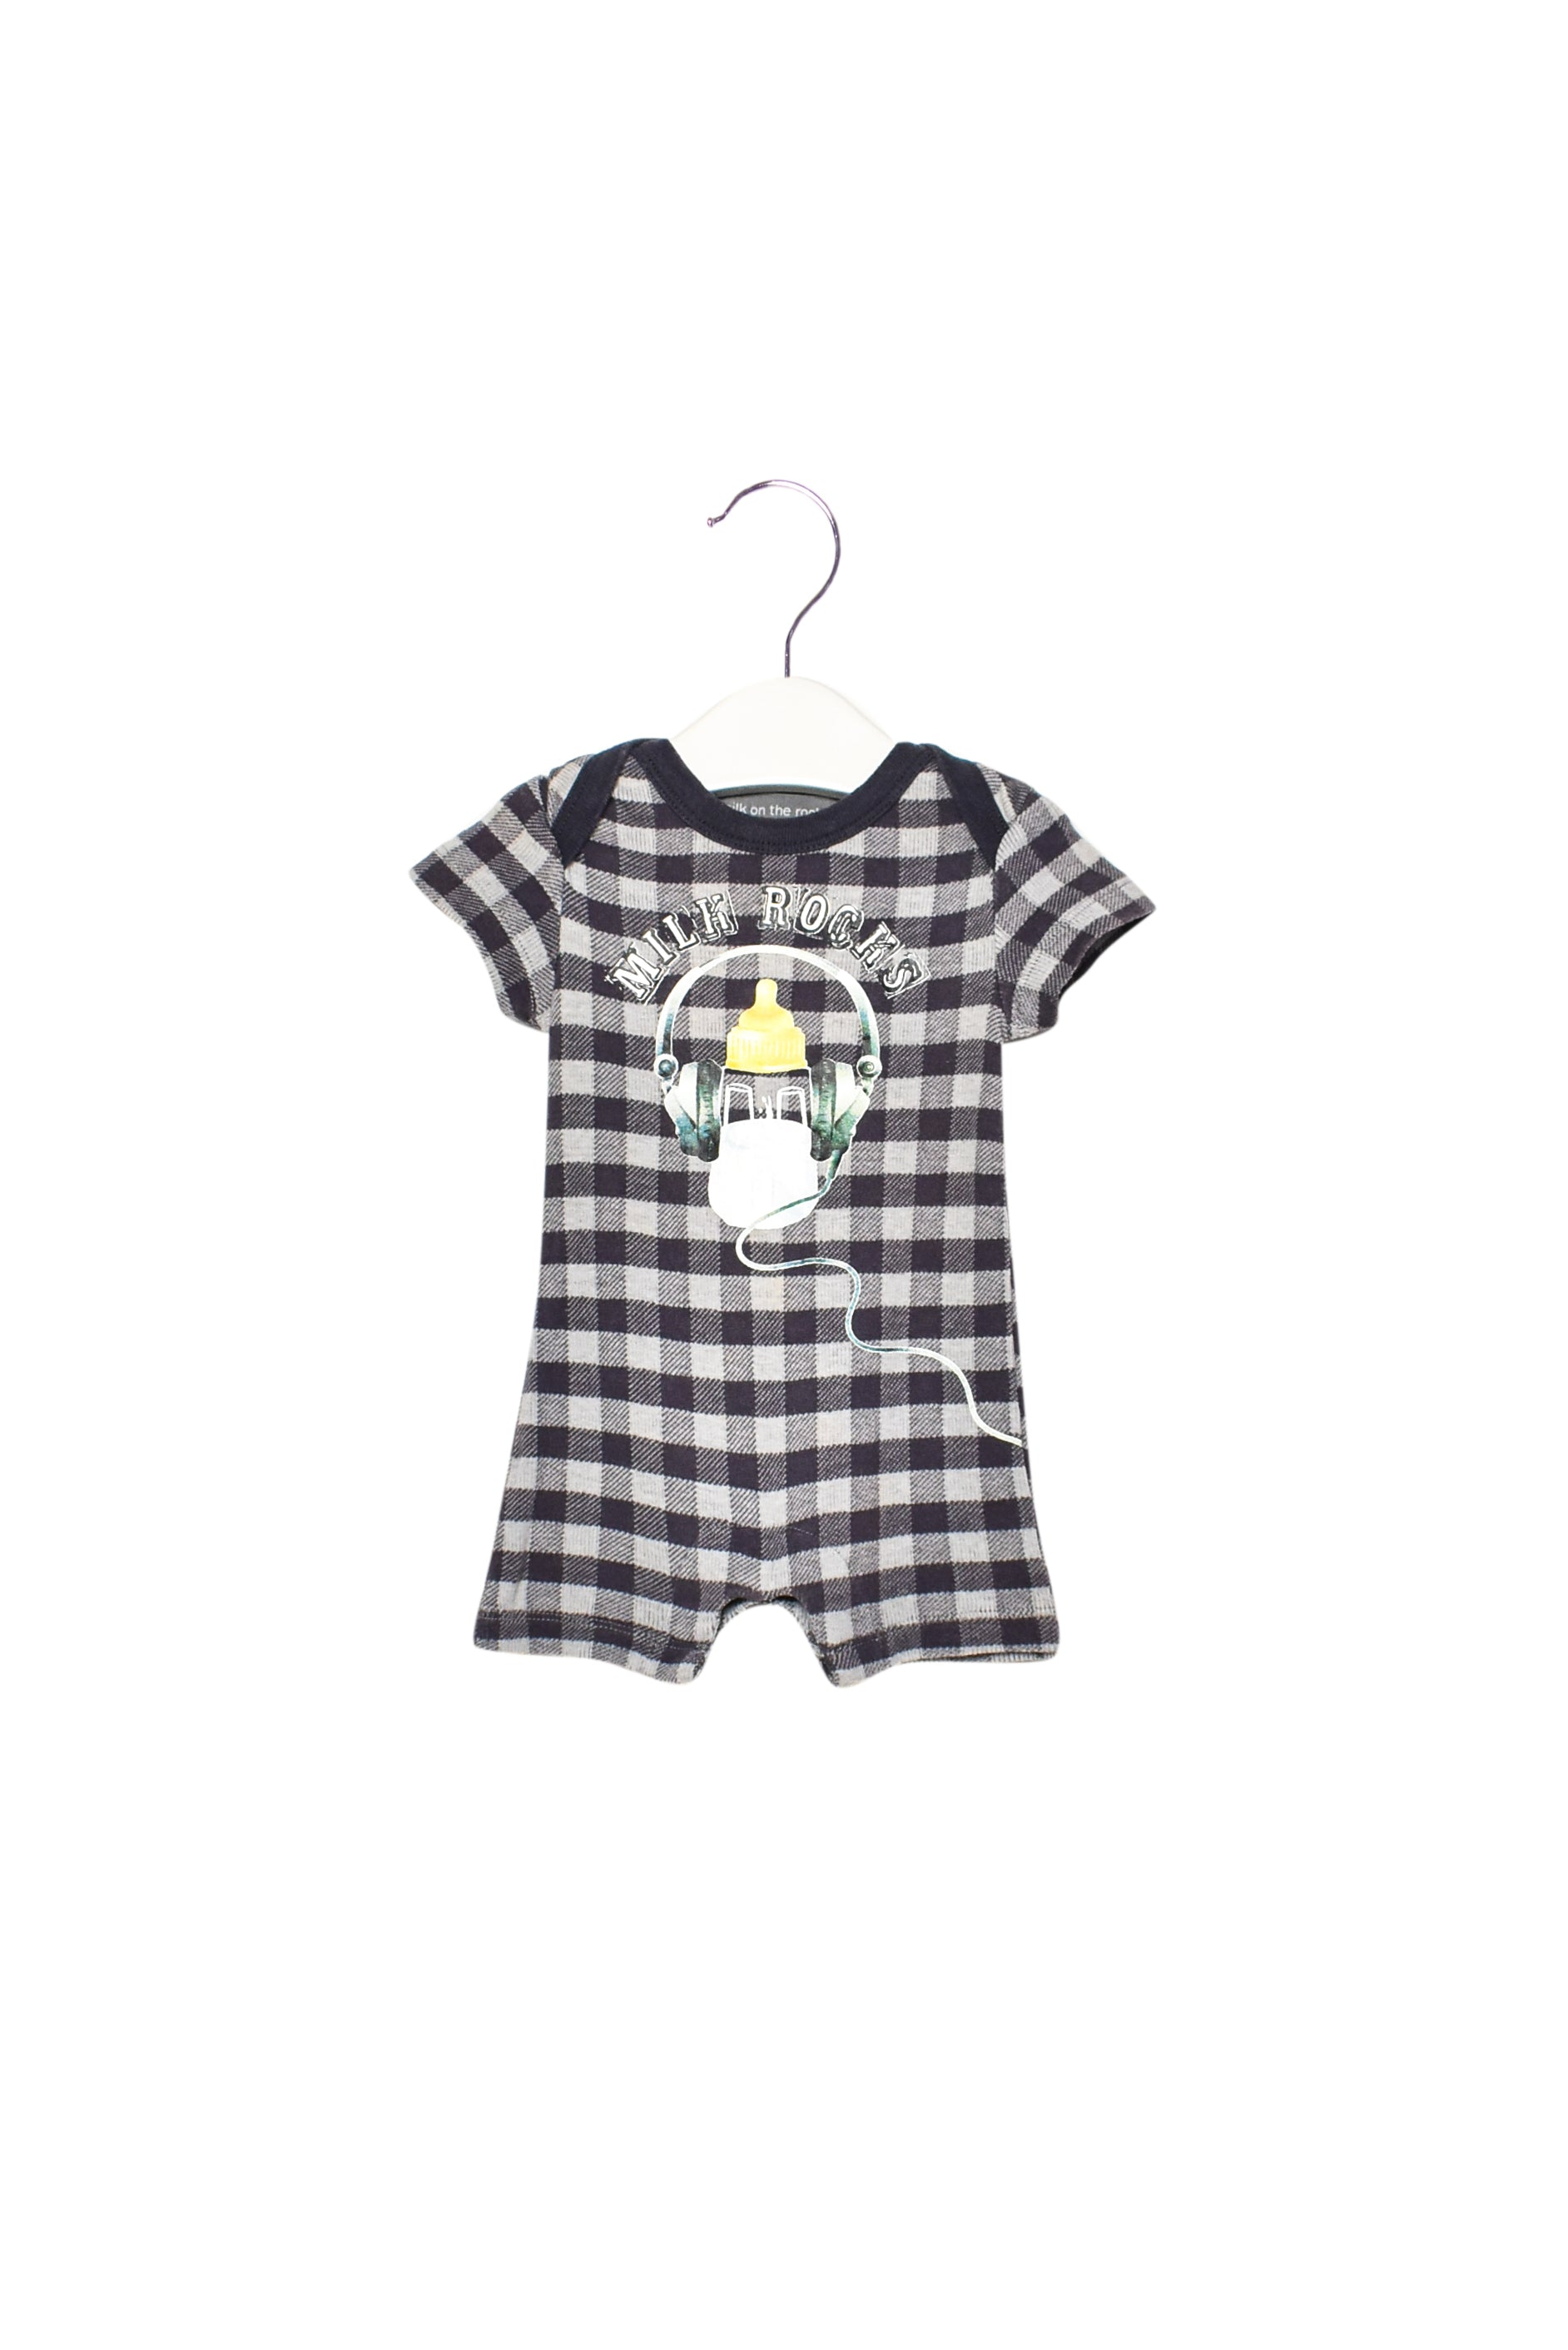 10012167 Milk on the Rocks Baby ~ Romper 3M at Retykle